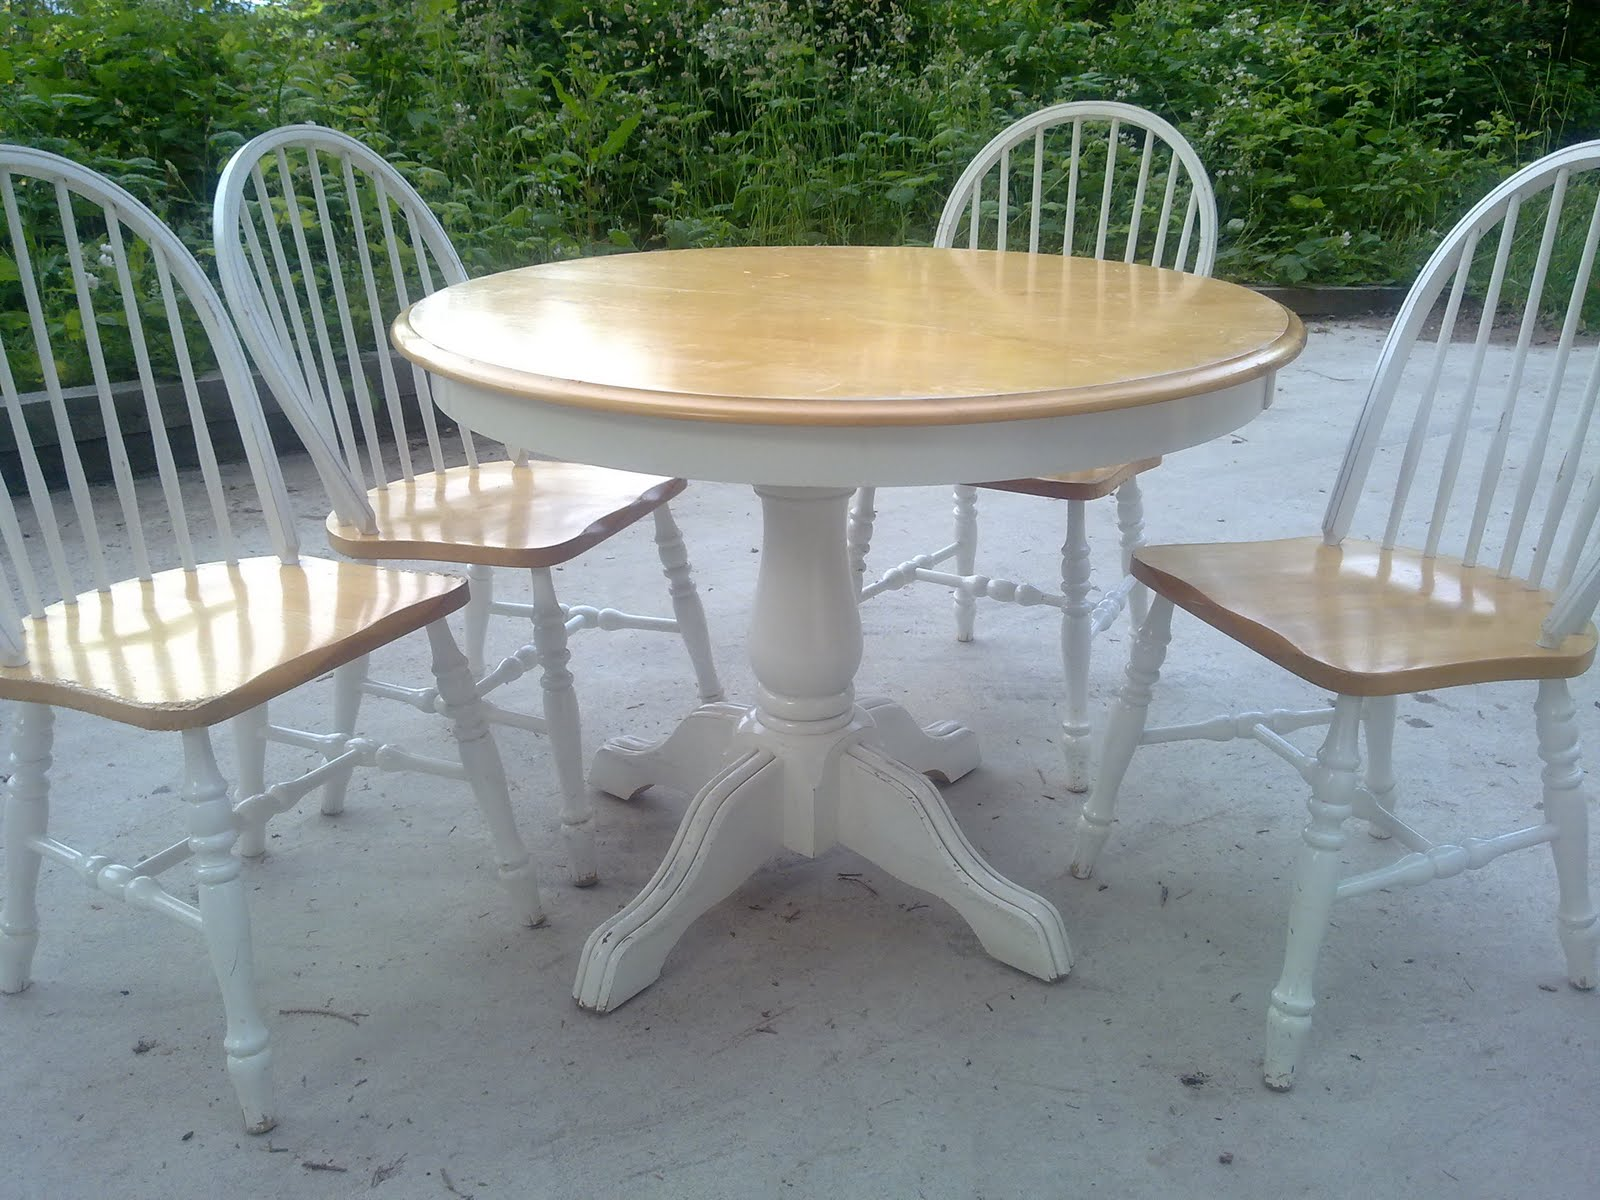 Shabby Chic Kitchen Table Sets - Castrophotos